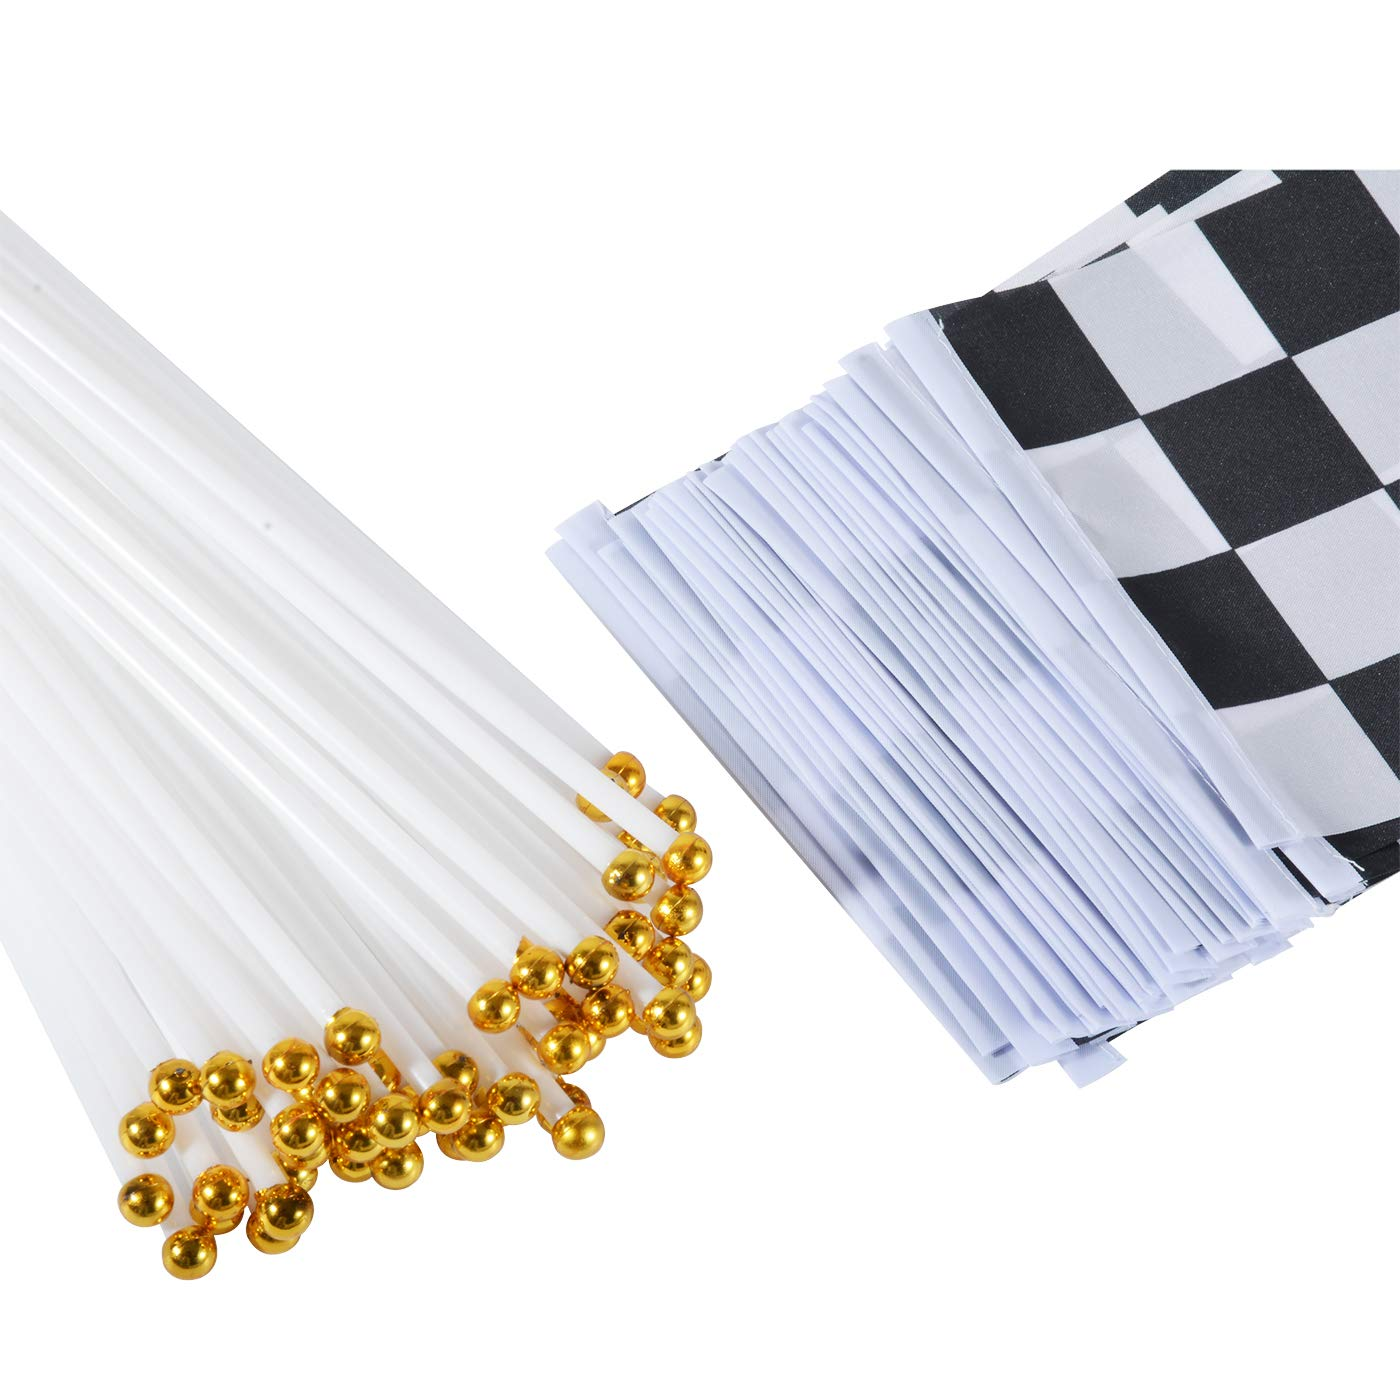 8 x 5.5 Inch Jakie-Mar 60pcs Checkered Flags Checkered Black and White Racing Stick Flag Racing Polyester Flags with Plastic Sticks for Racing,Race Car Party,Sport Events,Kids Birthday